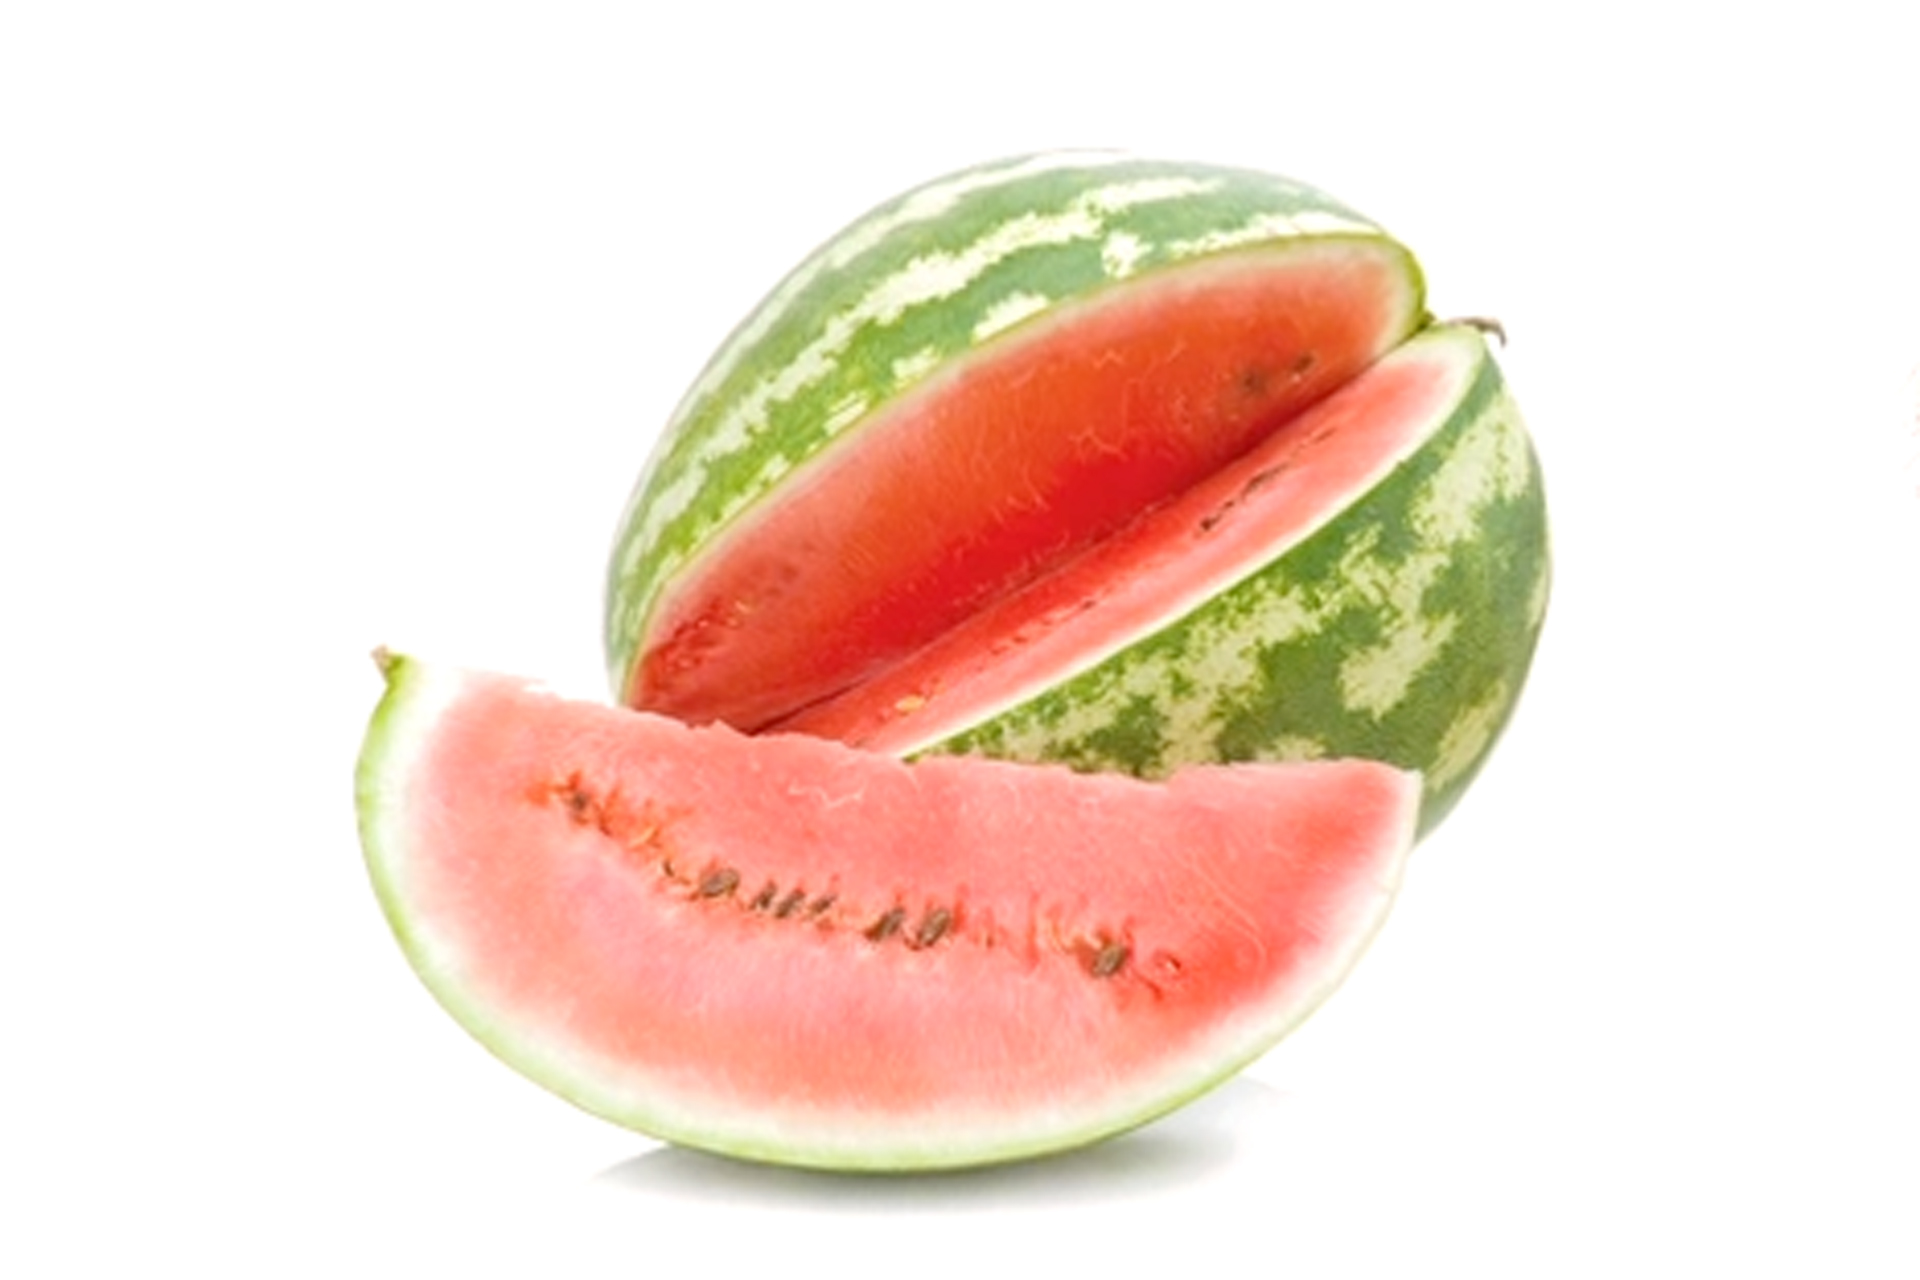 4 Reasons to Love Watermelon